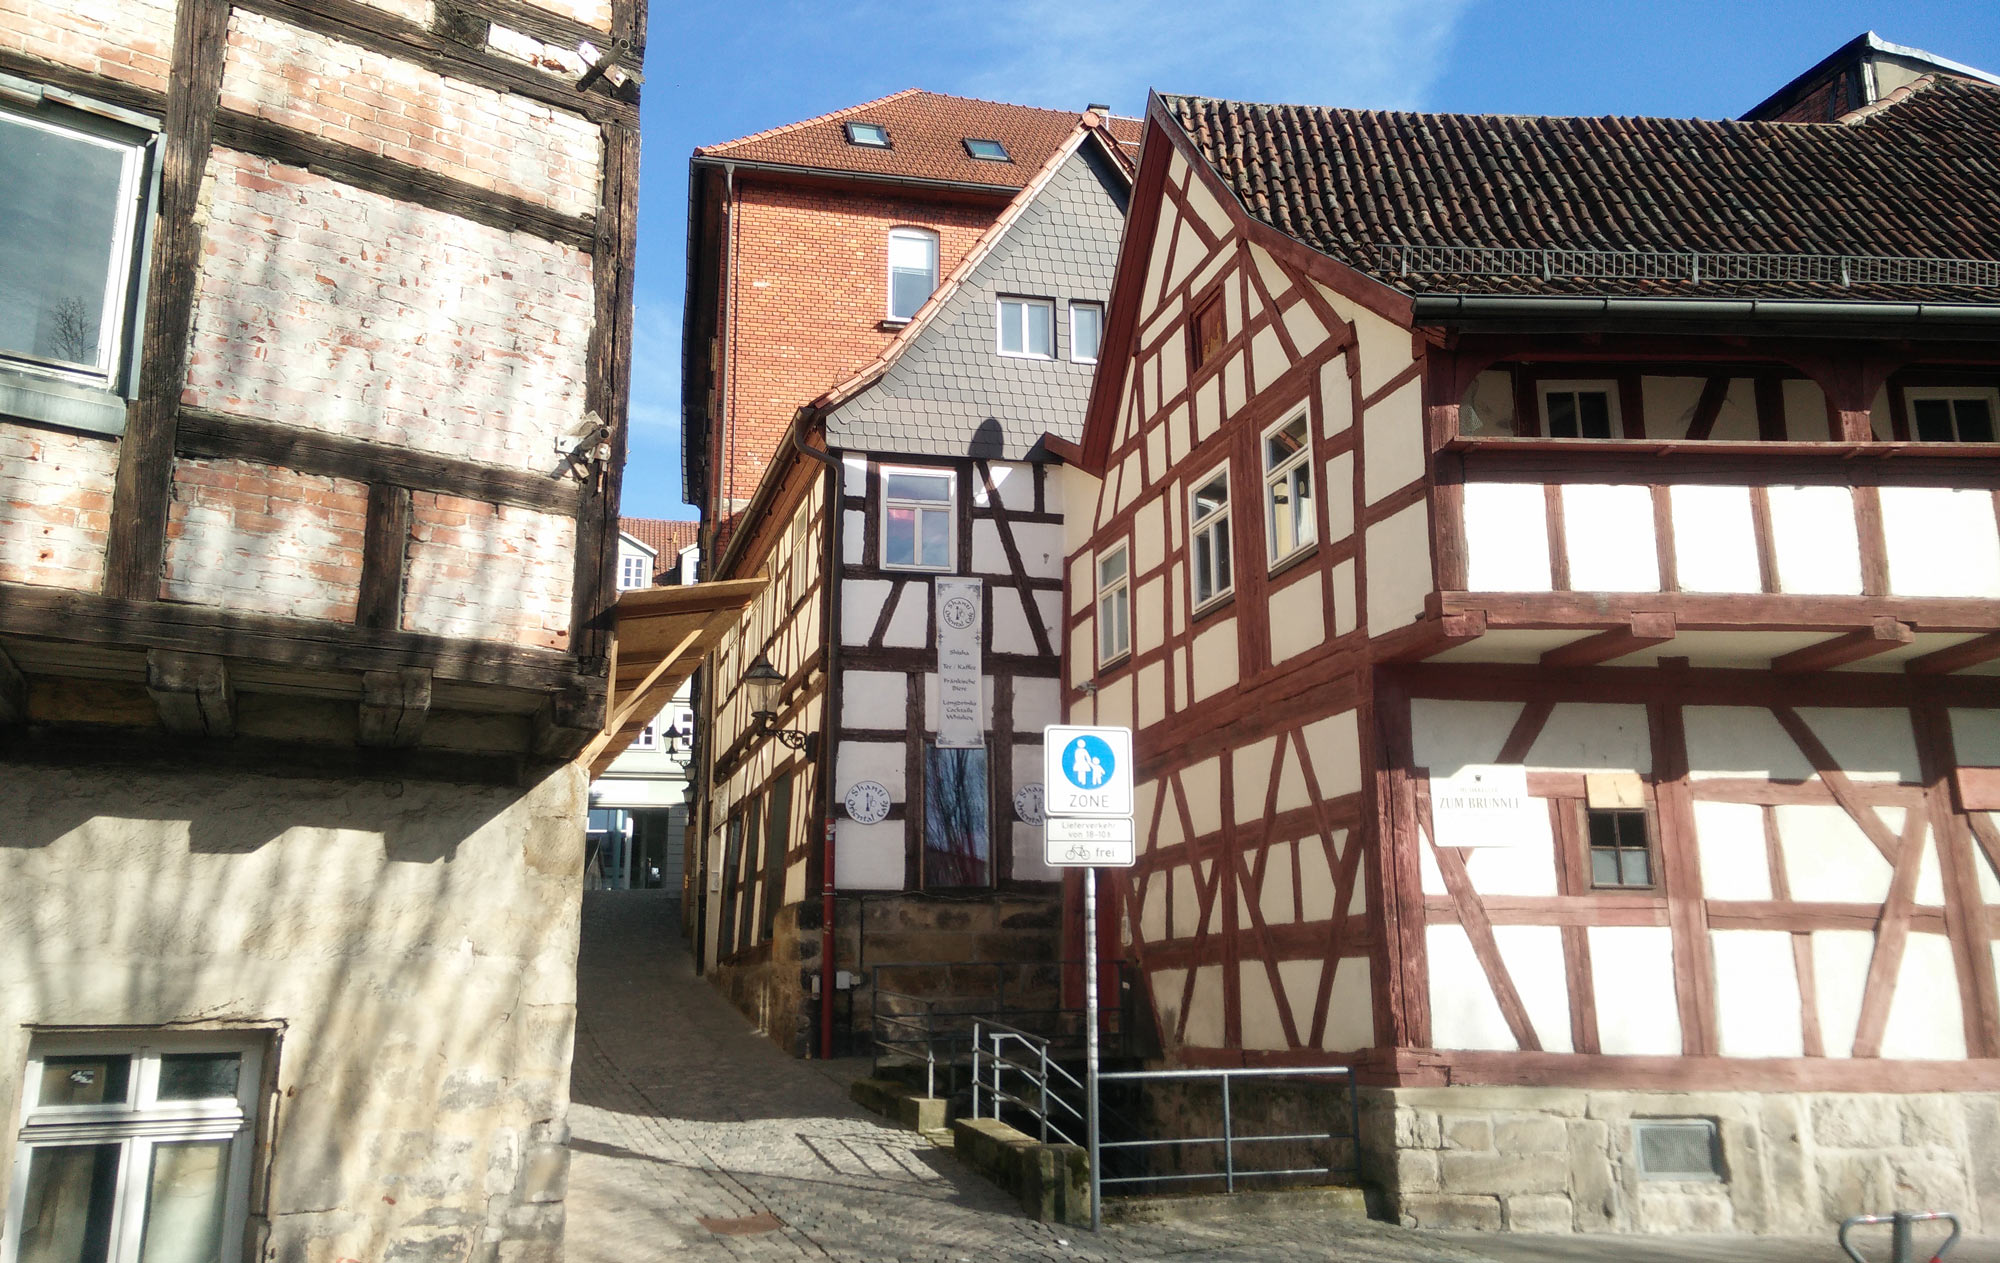 half-timbered houses in Brunngasse in Coburg